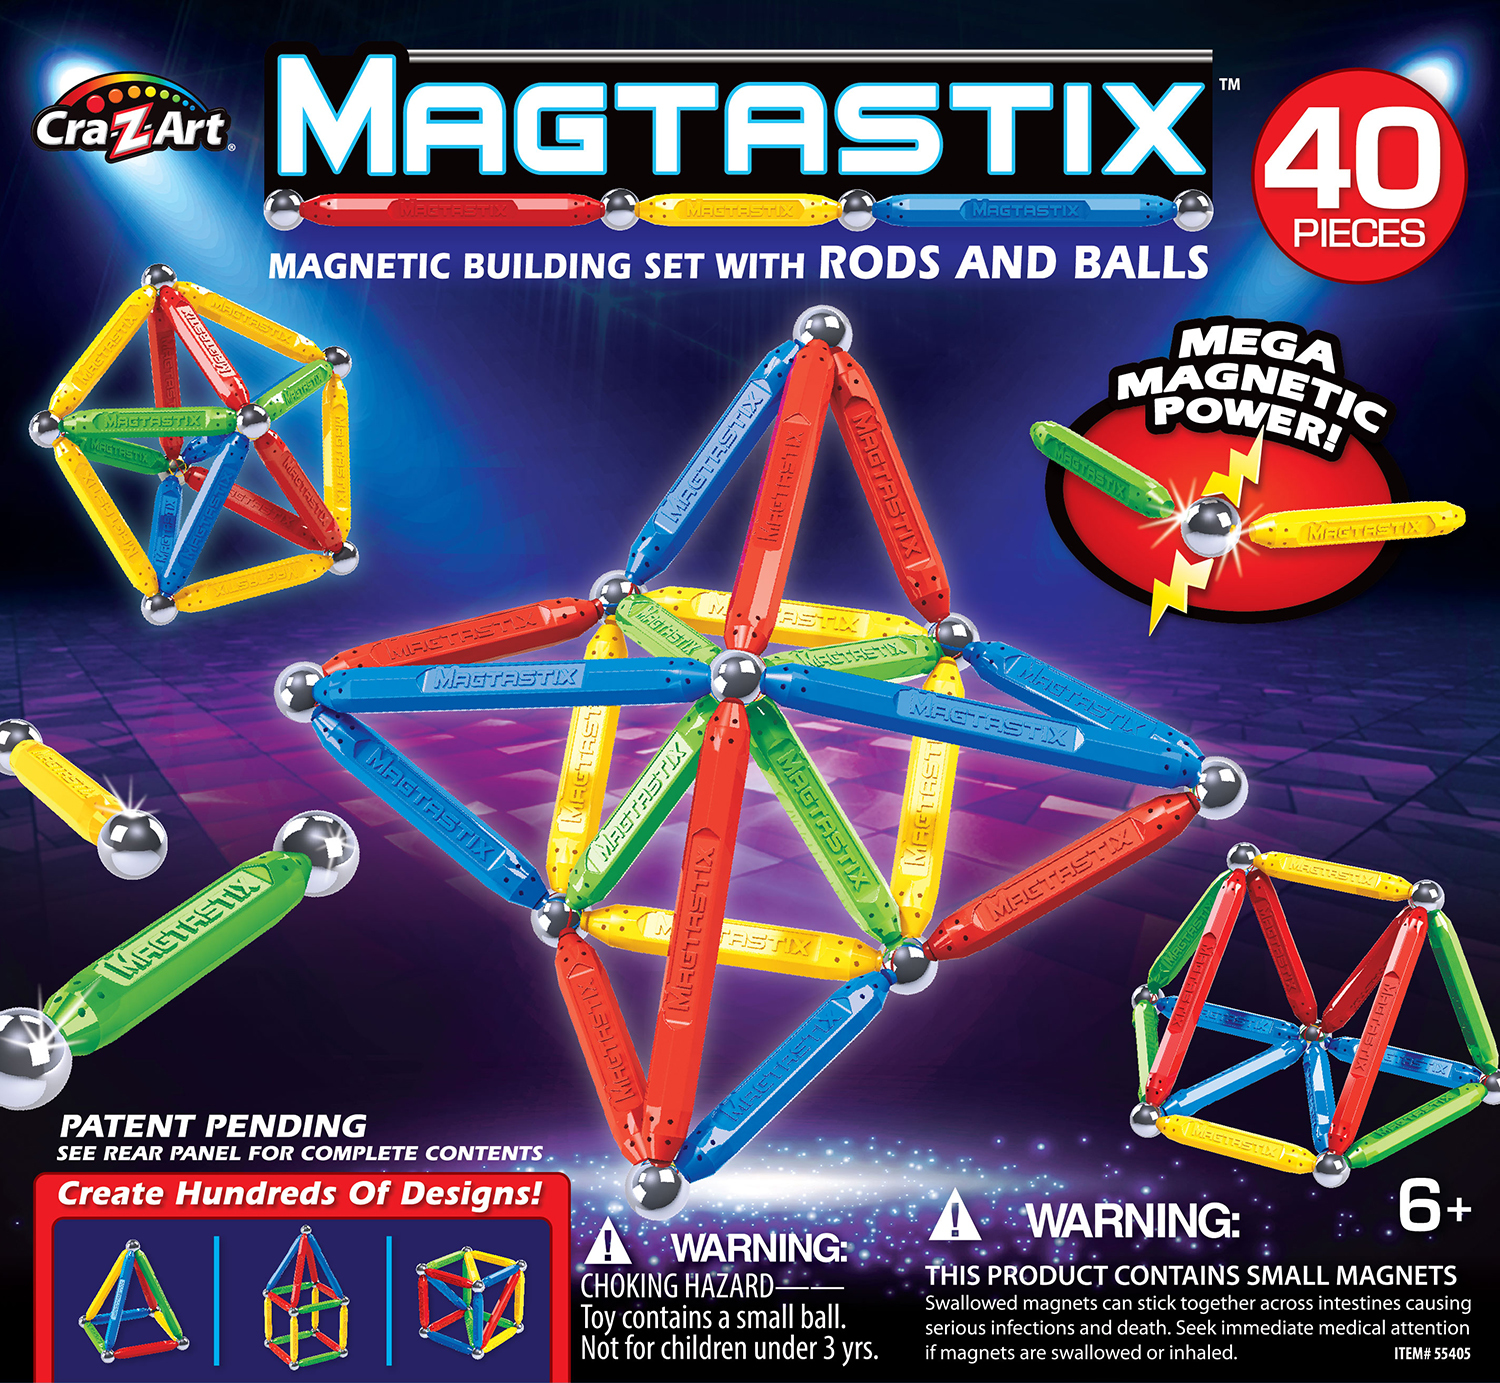 Magtastix: Magnetic Building Set - (40pc) image